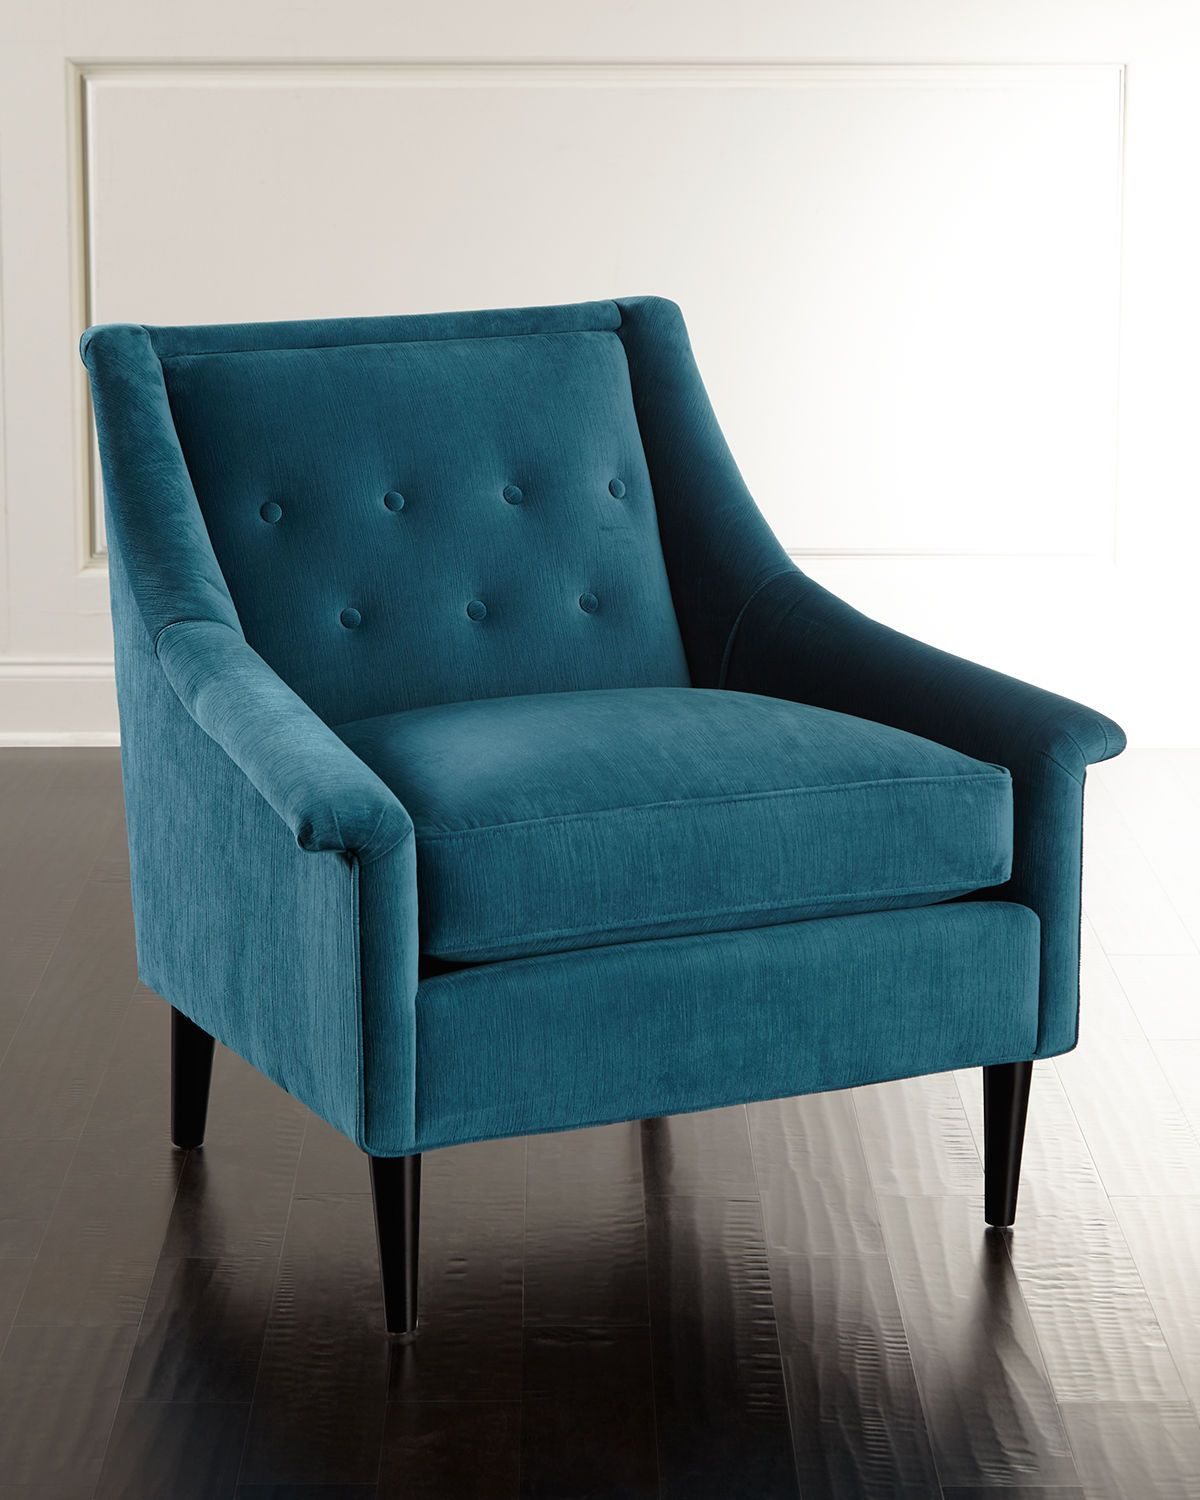 Compton Accent Chair Teal Accent Chair Accent Chairs Blue